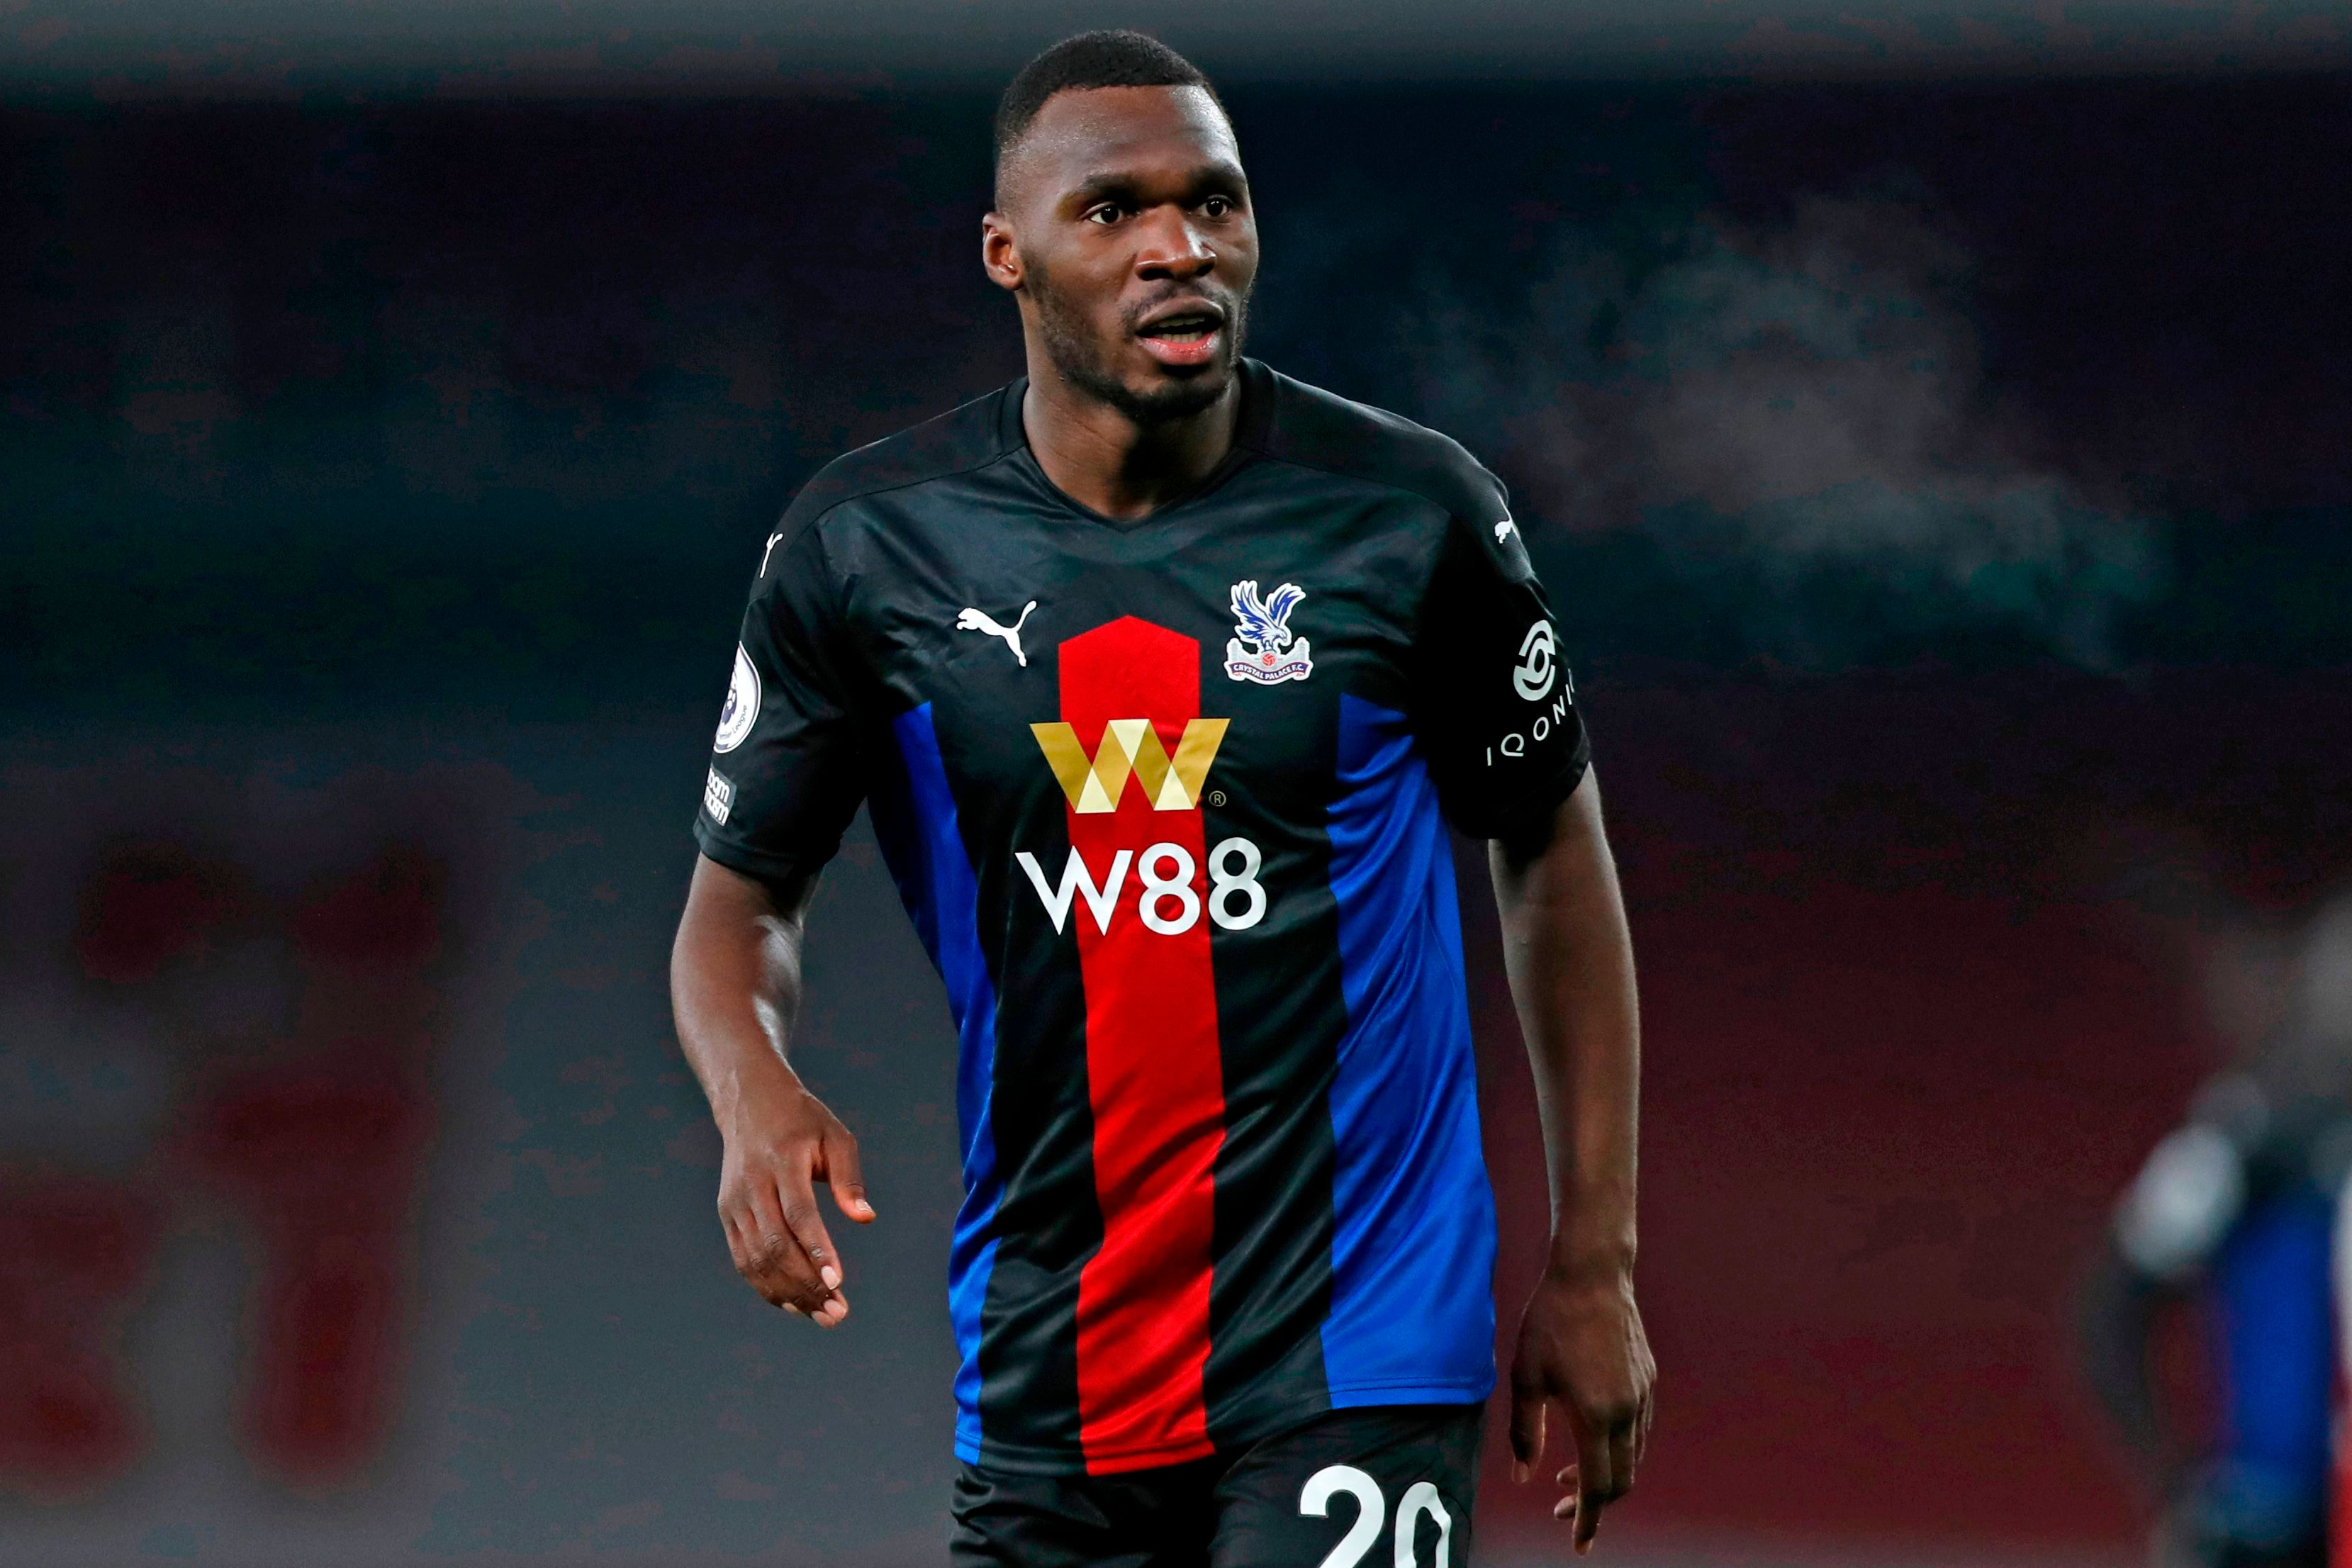 Former Liverpool striker Christian Benteke is one of the only players to score more headers this calendar year